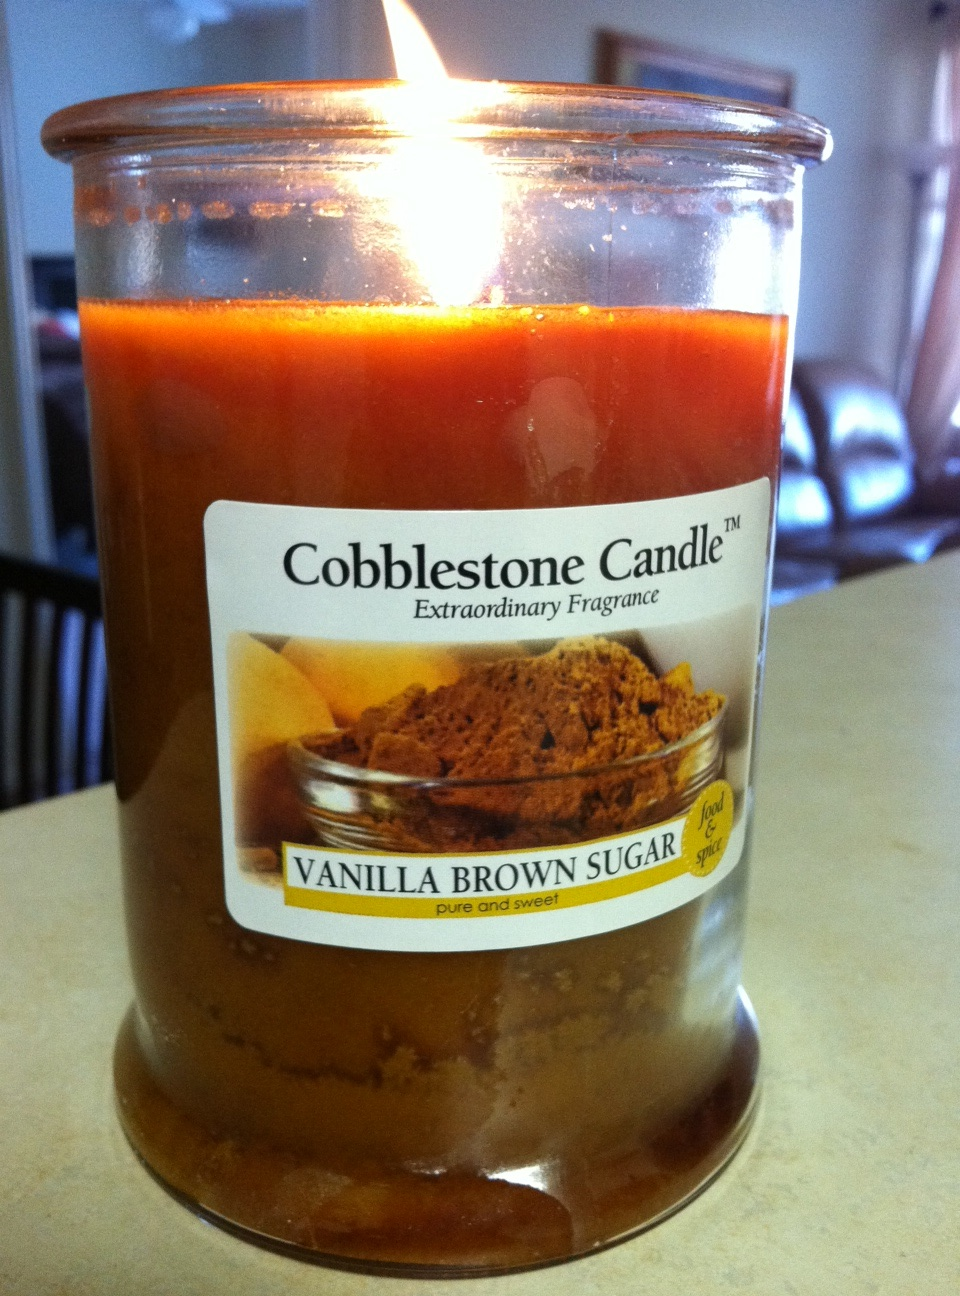 Cobblestone Candle Bargain Shopp